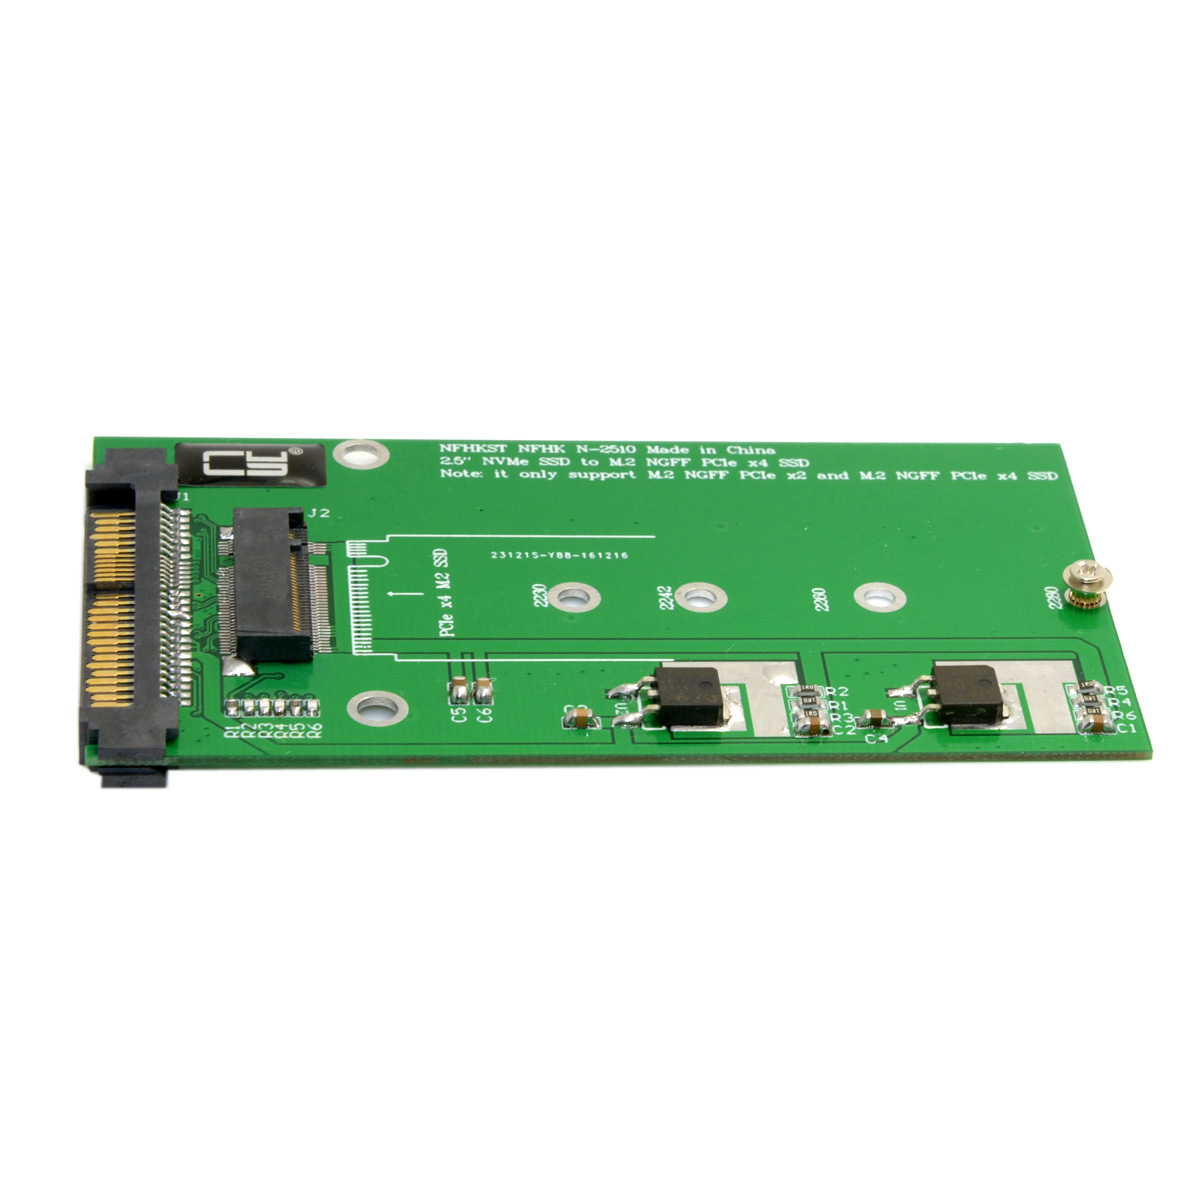 Chenyang SFF-8639 NVME U.2 To NGFF M.2 M-key PCIe SSD Adapter For Mainboard Replace Intel SSD 750 P3700 P3600